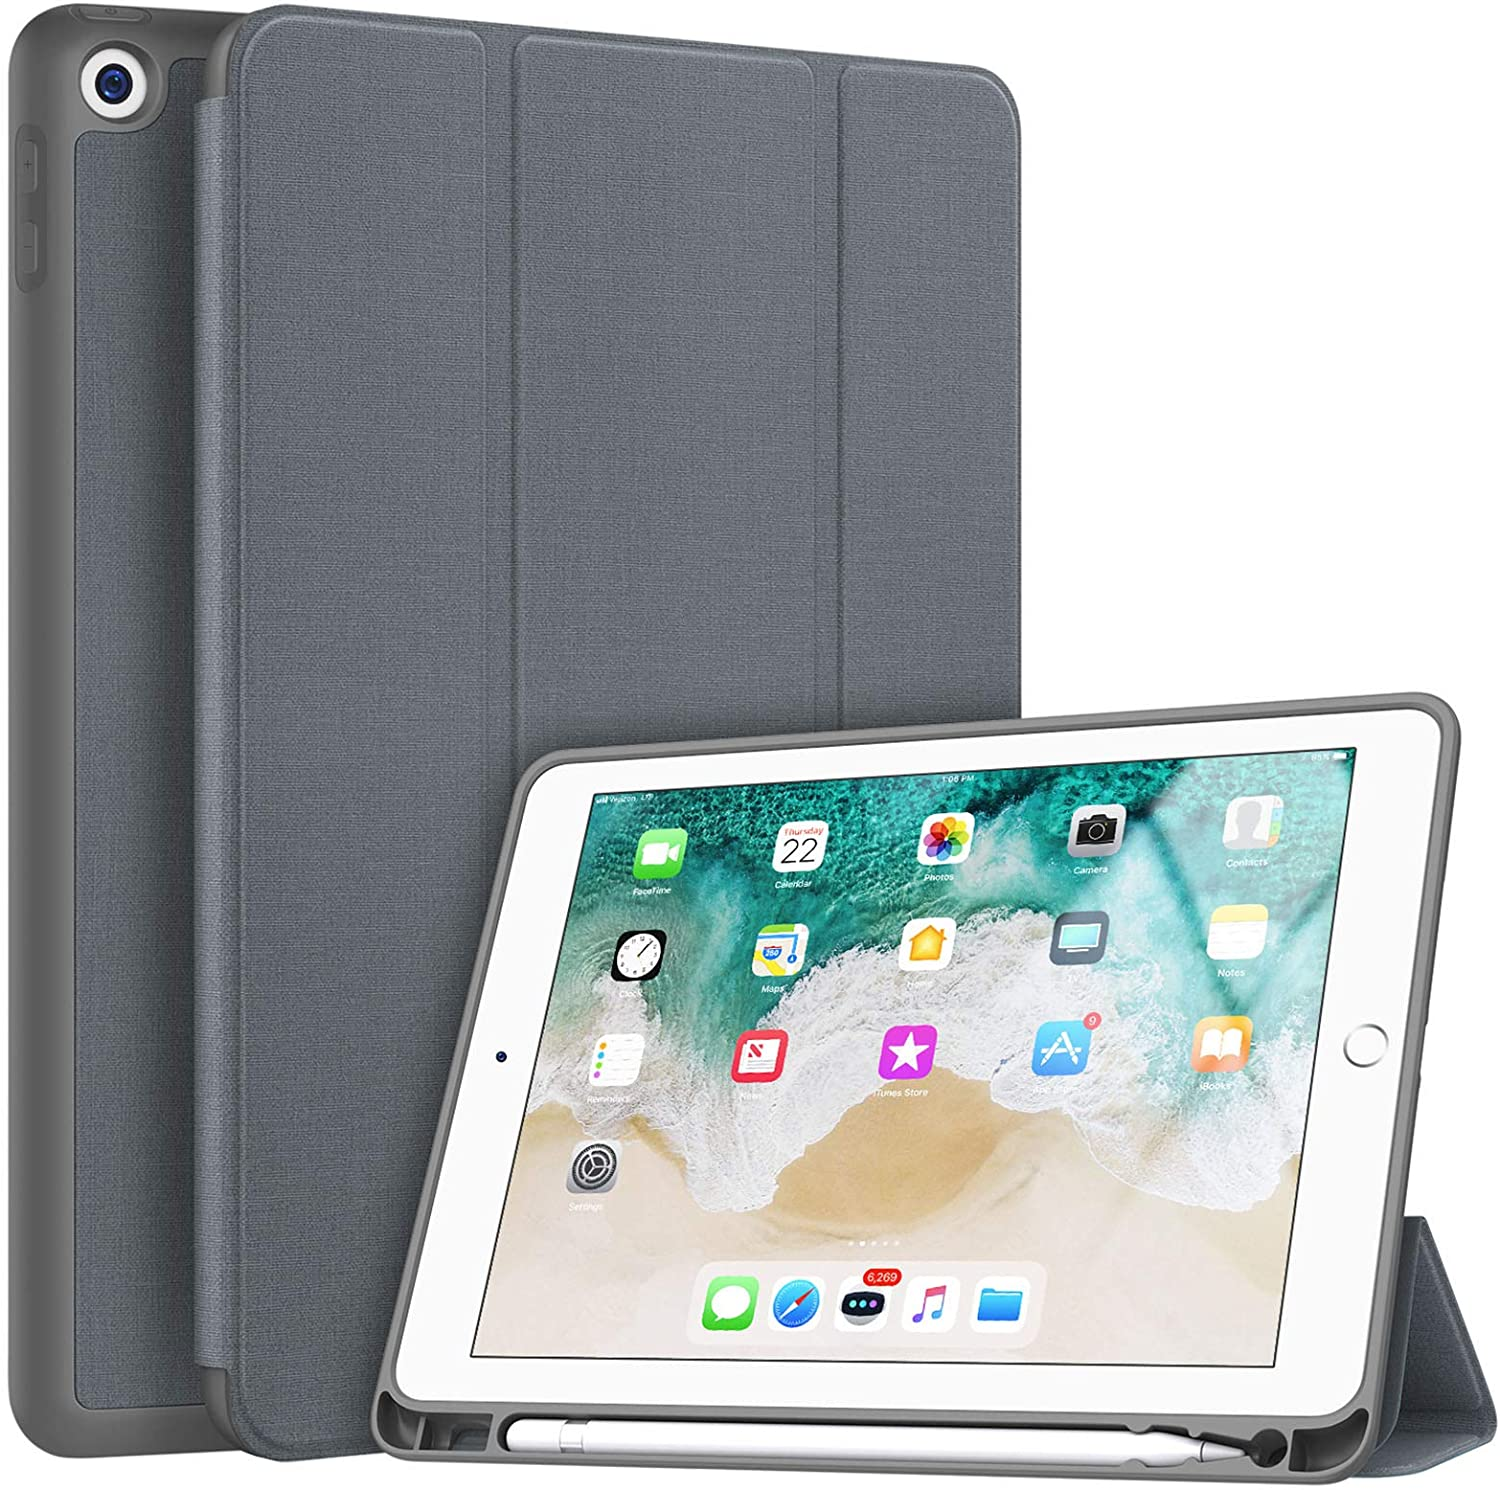 Soke iPad 9.7 2018/2017 Case with Pencil Holder, Slim Fit Smart Case, Trifold Stand Shockproof Soft TPU Back Cover, Auto Sleep/Wake Function for iPad 9.7 inch 5th/6th Generation,Grey